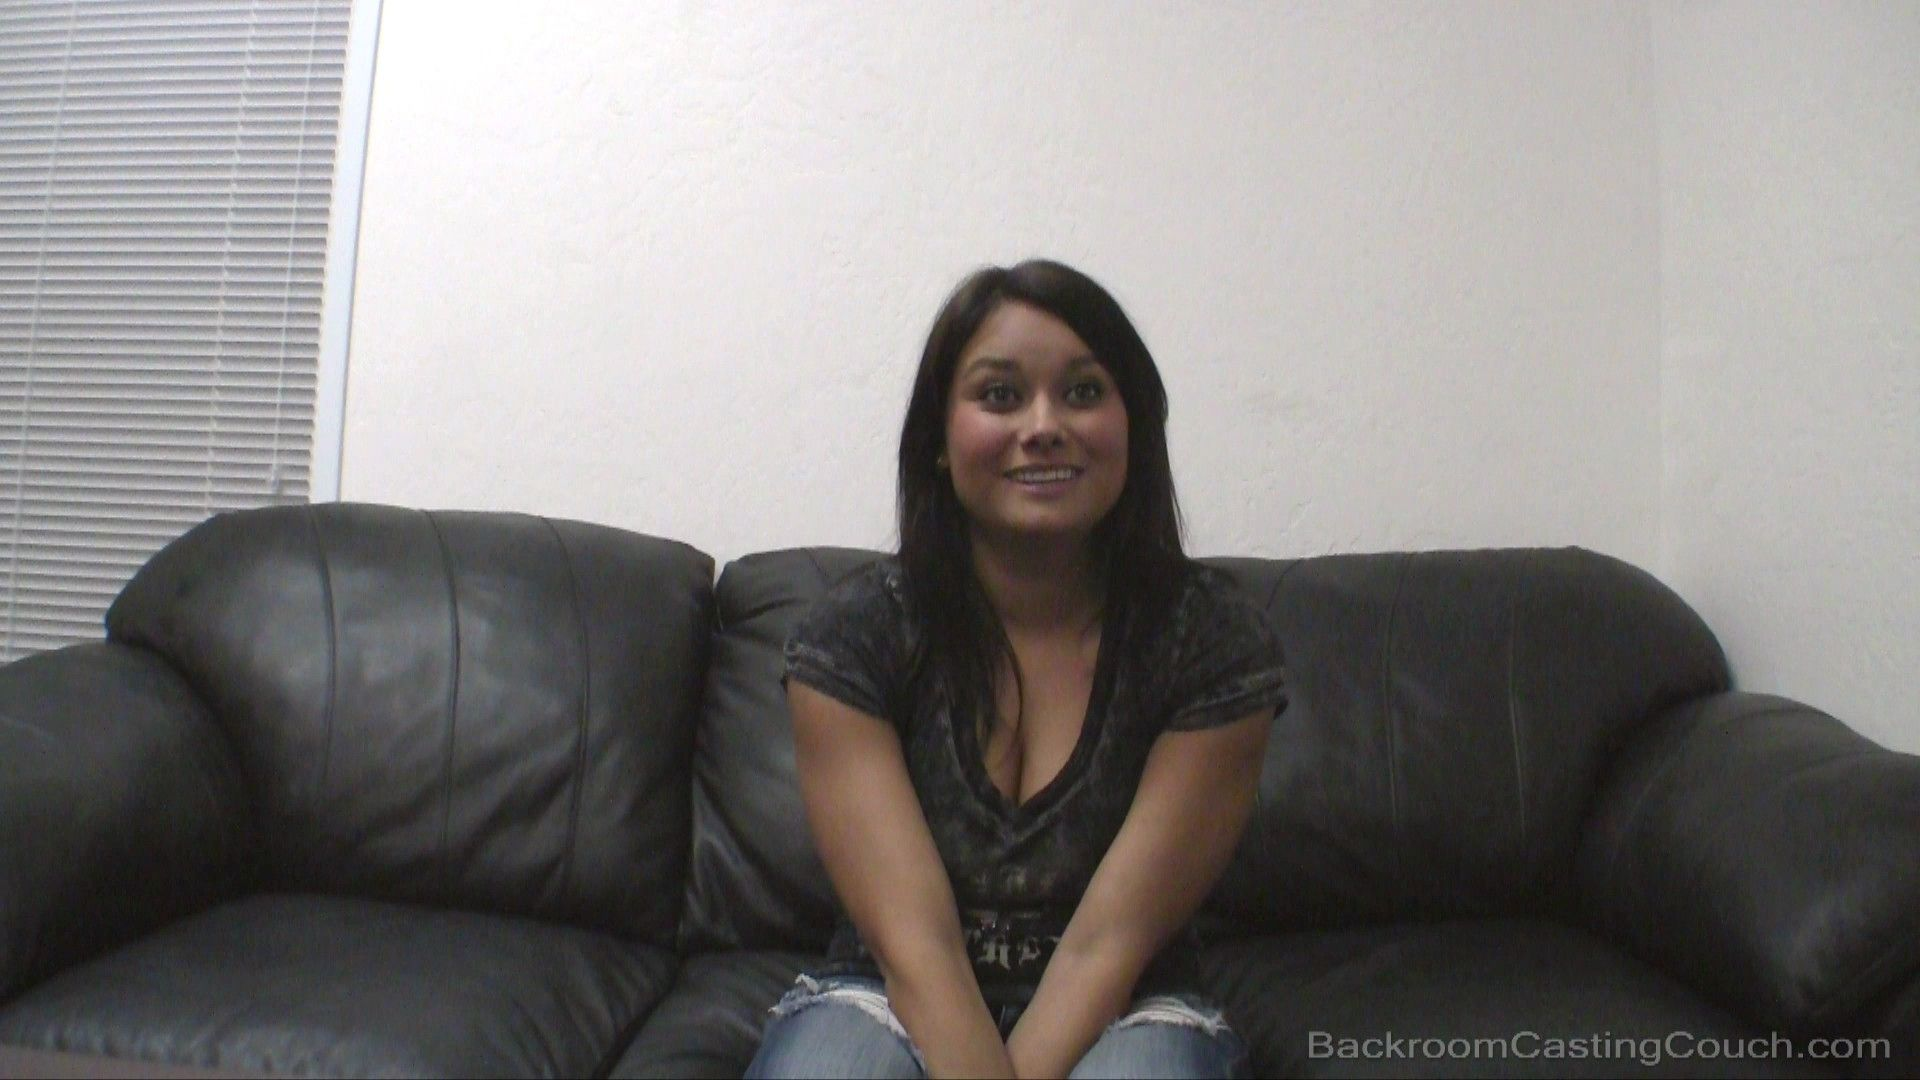 Backroom Casting Couch Gallery